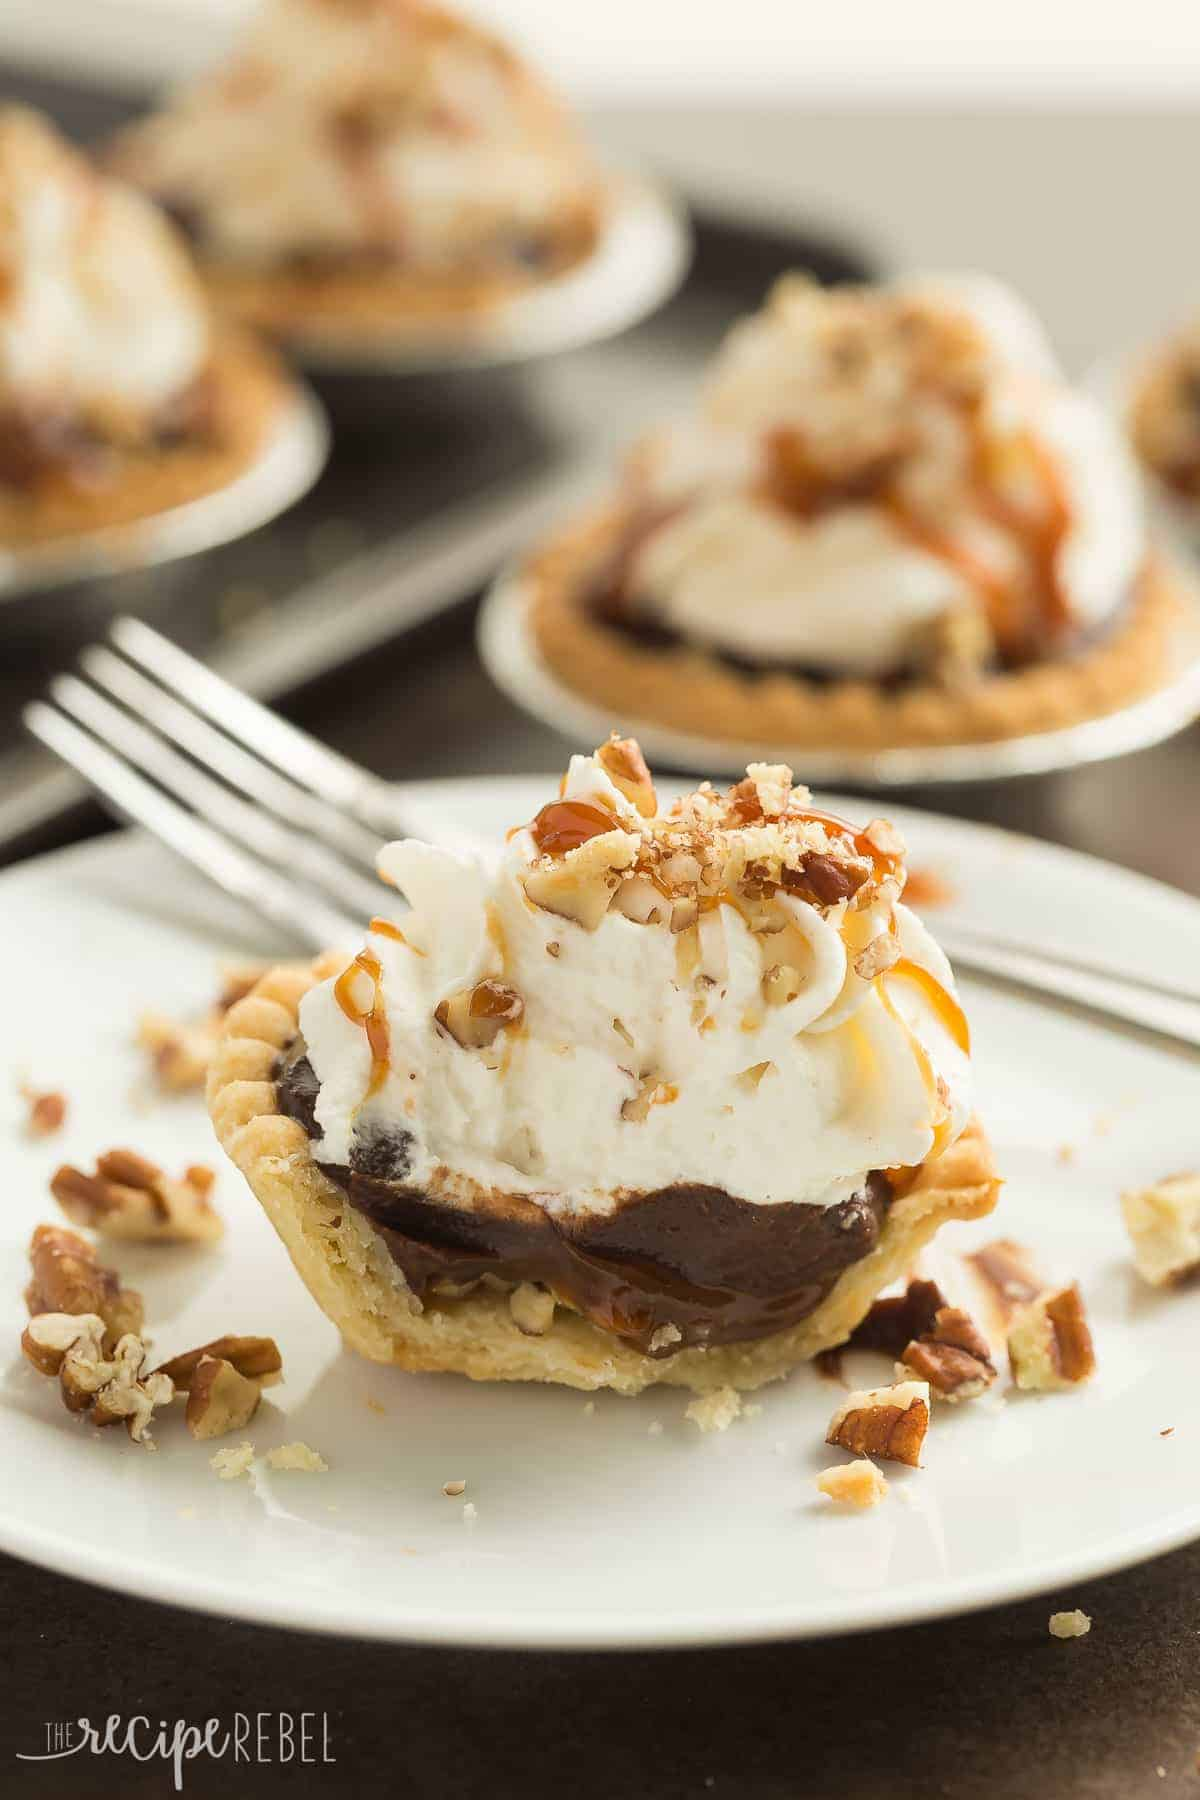 Turtle Pudding Pie Minis are the perfect bite-sized treat (made in tart shells!) for the holidays or any party -- they come together quickly and are loaded with pecans, caramel, chocolate pudding and topped with whipped cream!